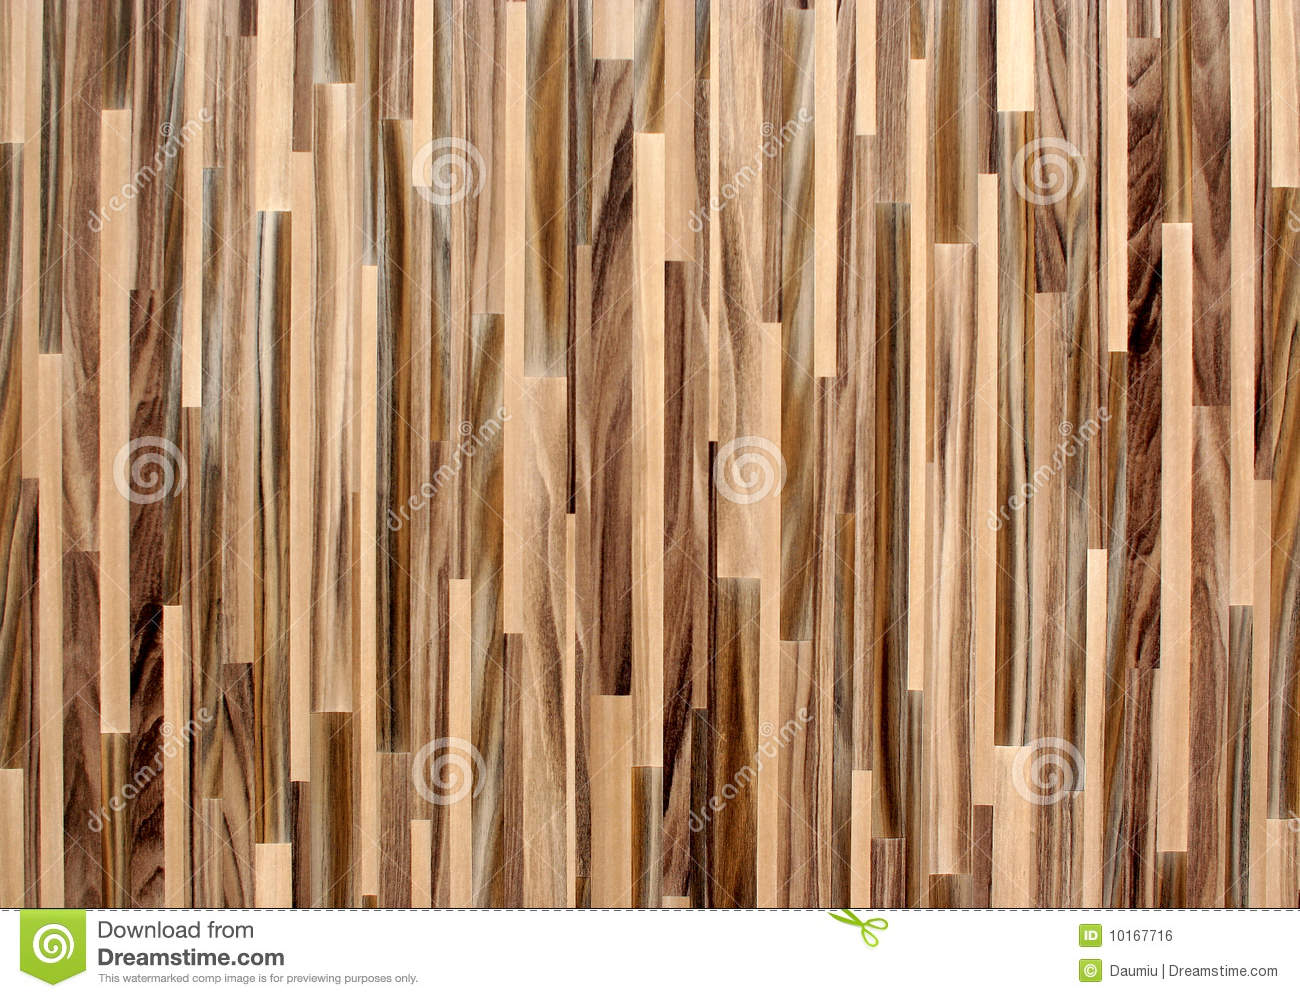 Vertical Striped Wood Texture Royalty Free Stock Image